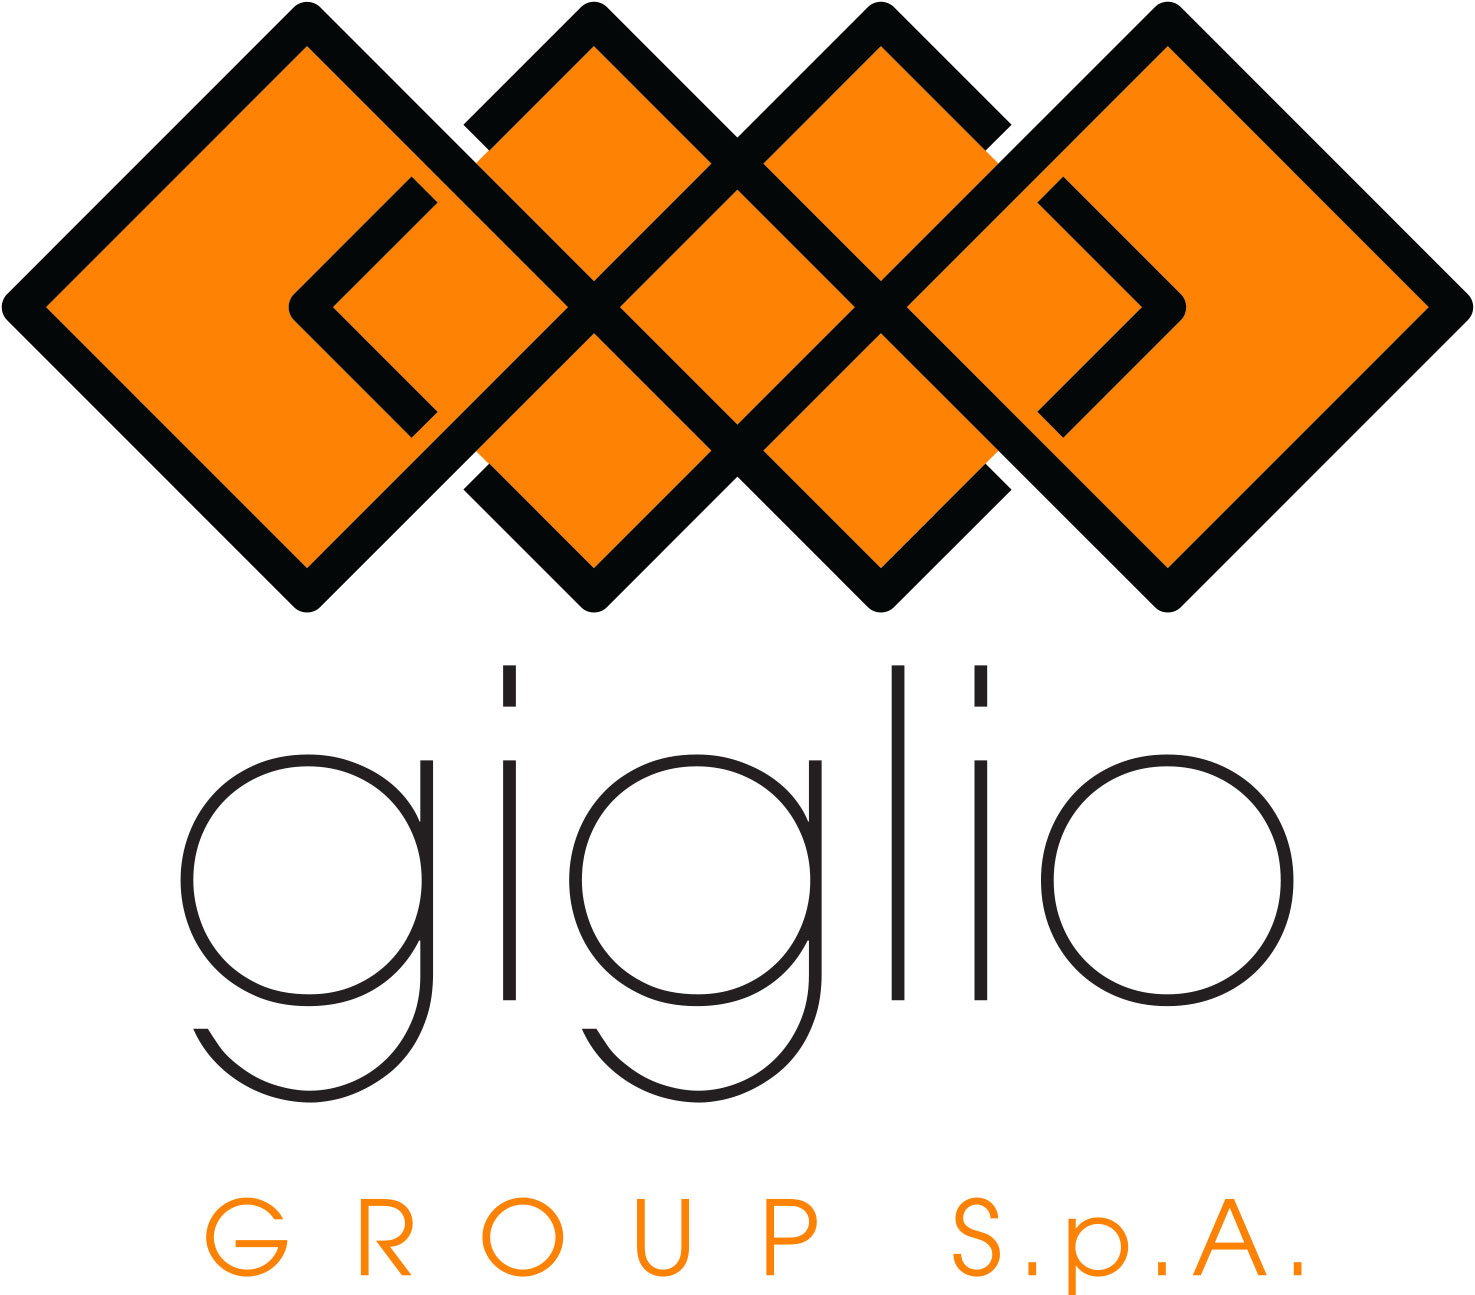 Giglio Group S.p.A.